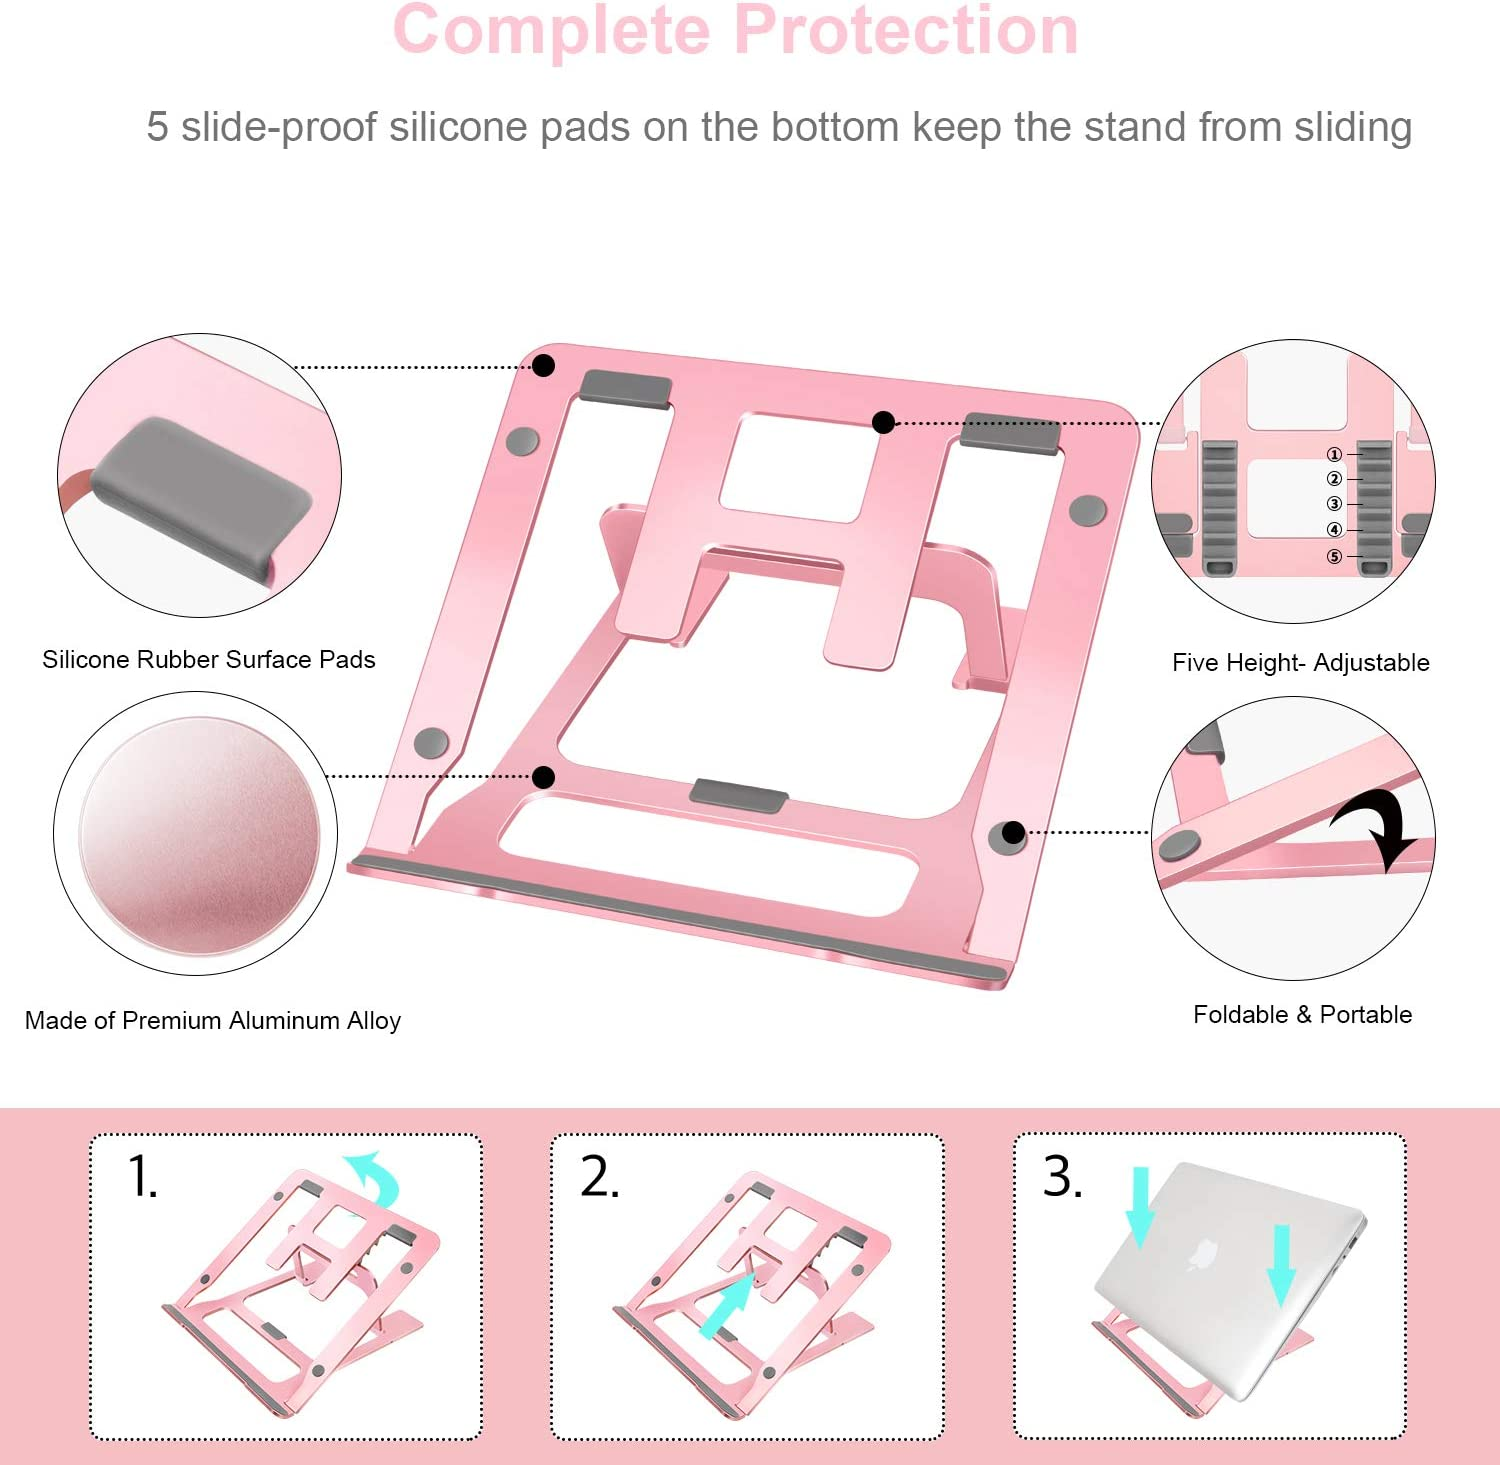 Dell Aluminum Multi-Angle Stand Compatible with MacBook Viixm Adjustable Laptop Holder More 10-15.6 Inch PC Notebook Rose Gold Laptop Stand Portable Ergonomic Laptop Riser for Desk HP